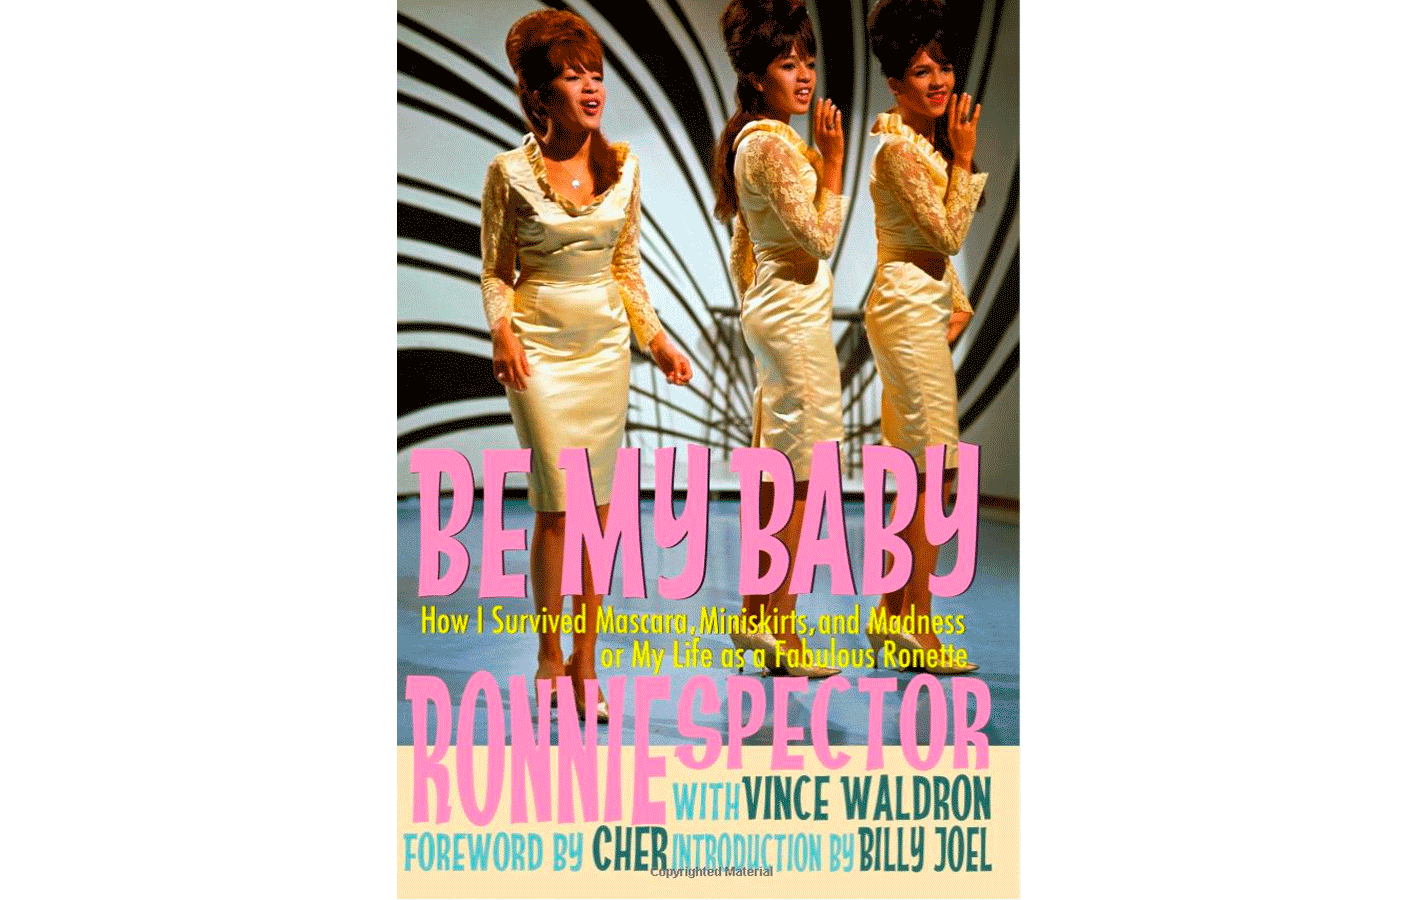 Cover for Be My Baby, a memoir by Ronnie Spector